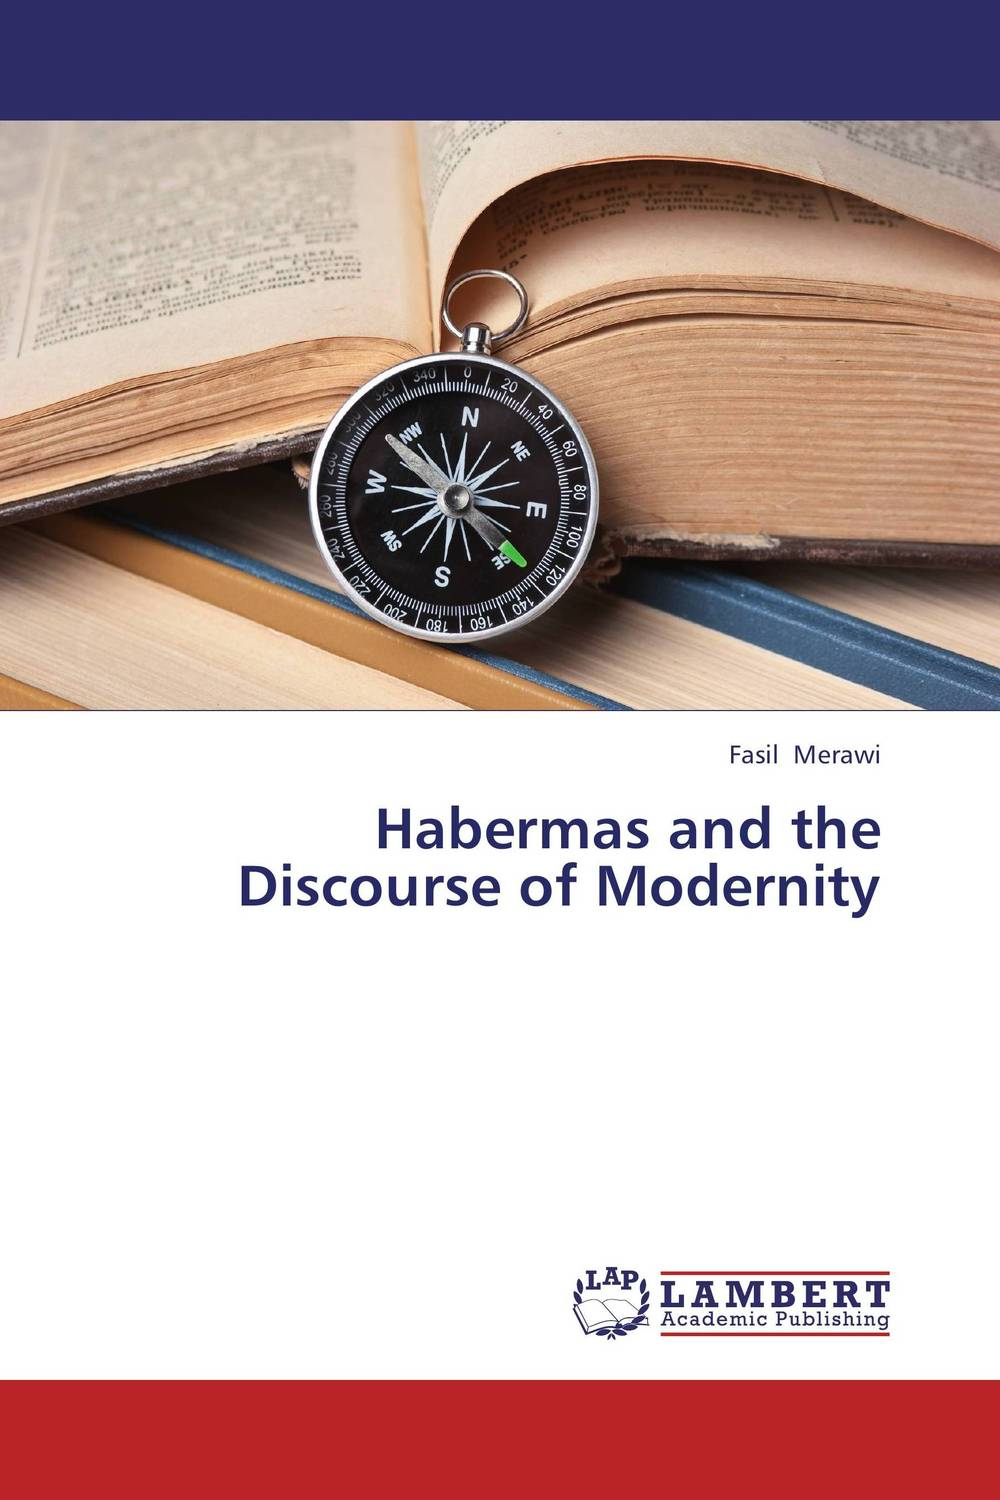 Habermas and the Discourse of Modernity consumer dummies exploring wine for dummies